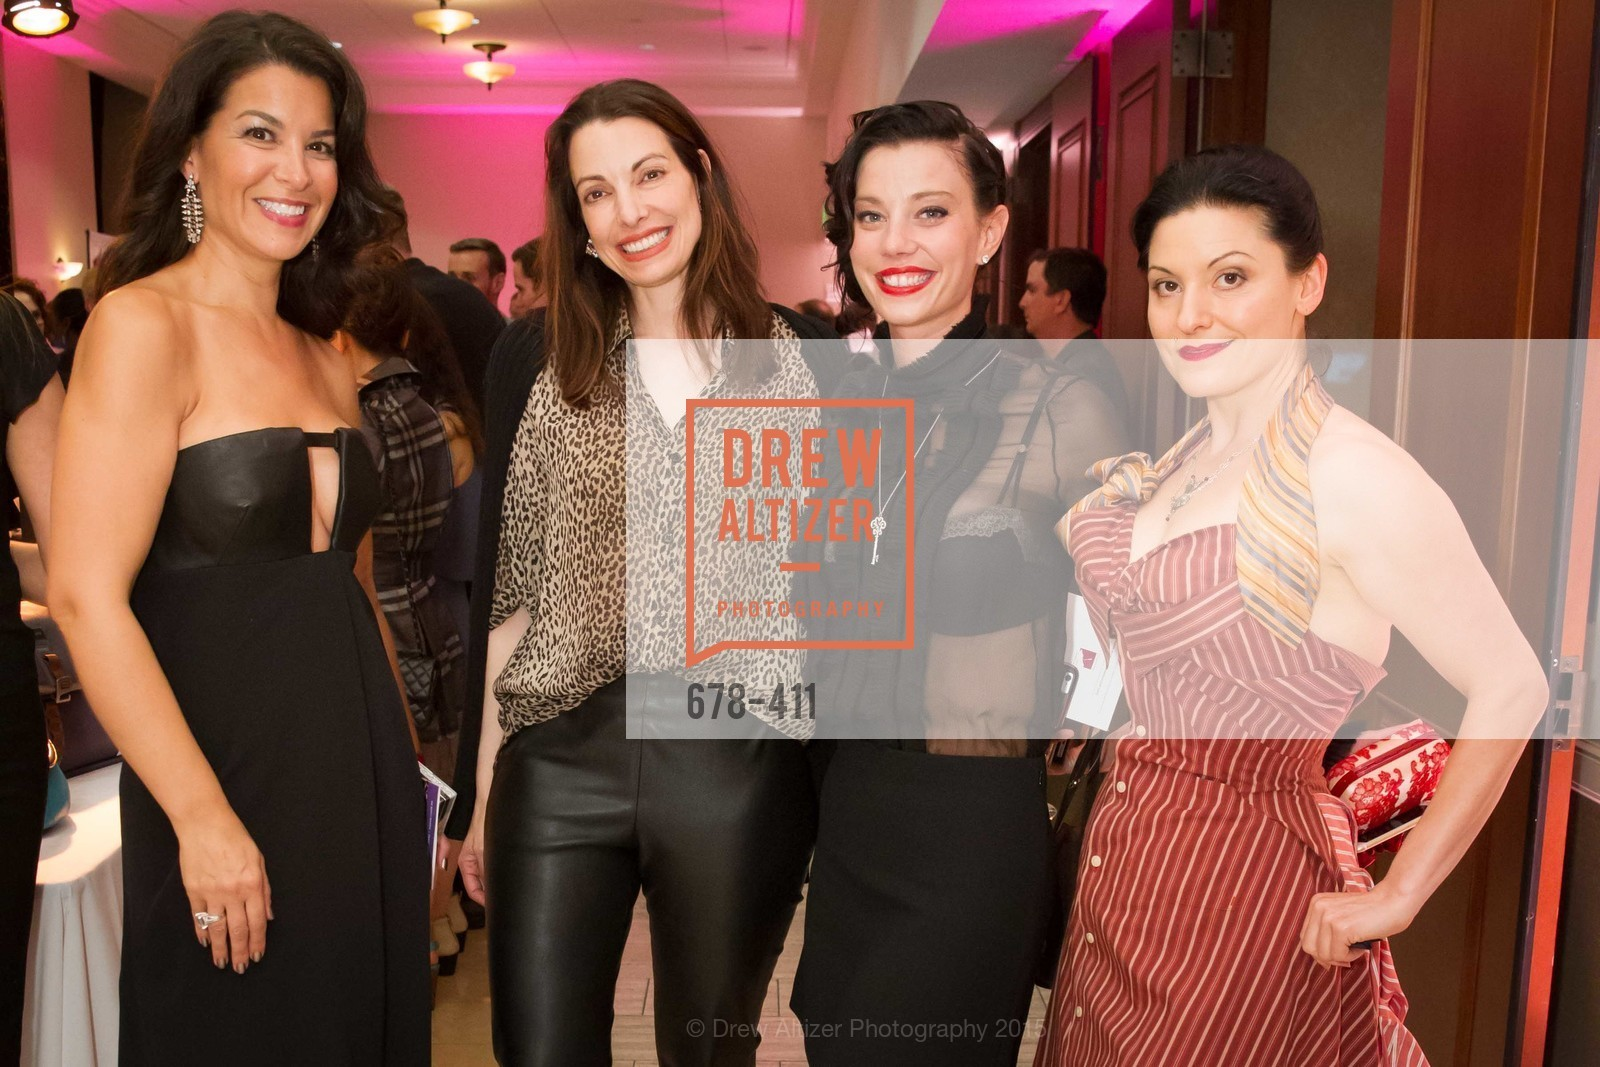 Shannon Bavarro, Camille Bently, Autumn Adamme, Breast Cancer Emergency Fund's: THIS OLD BAG: The Power of the Purse, The Bently Reserve. 301 Battery St, October 23rd, 2015,Drew Altizer, Drew Altizer Photography, full-service event agency, private events, San Francisco photographer, photographer California